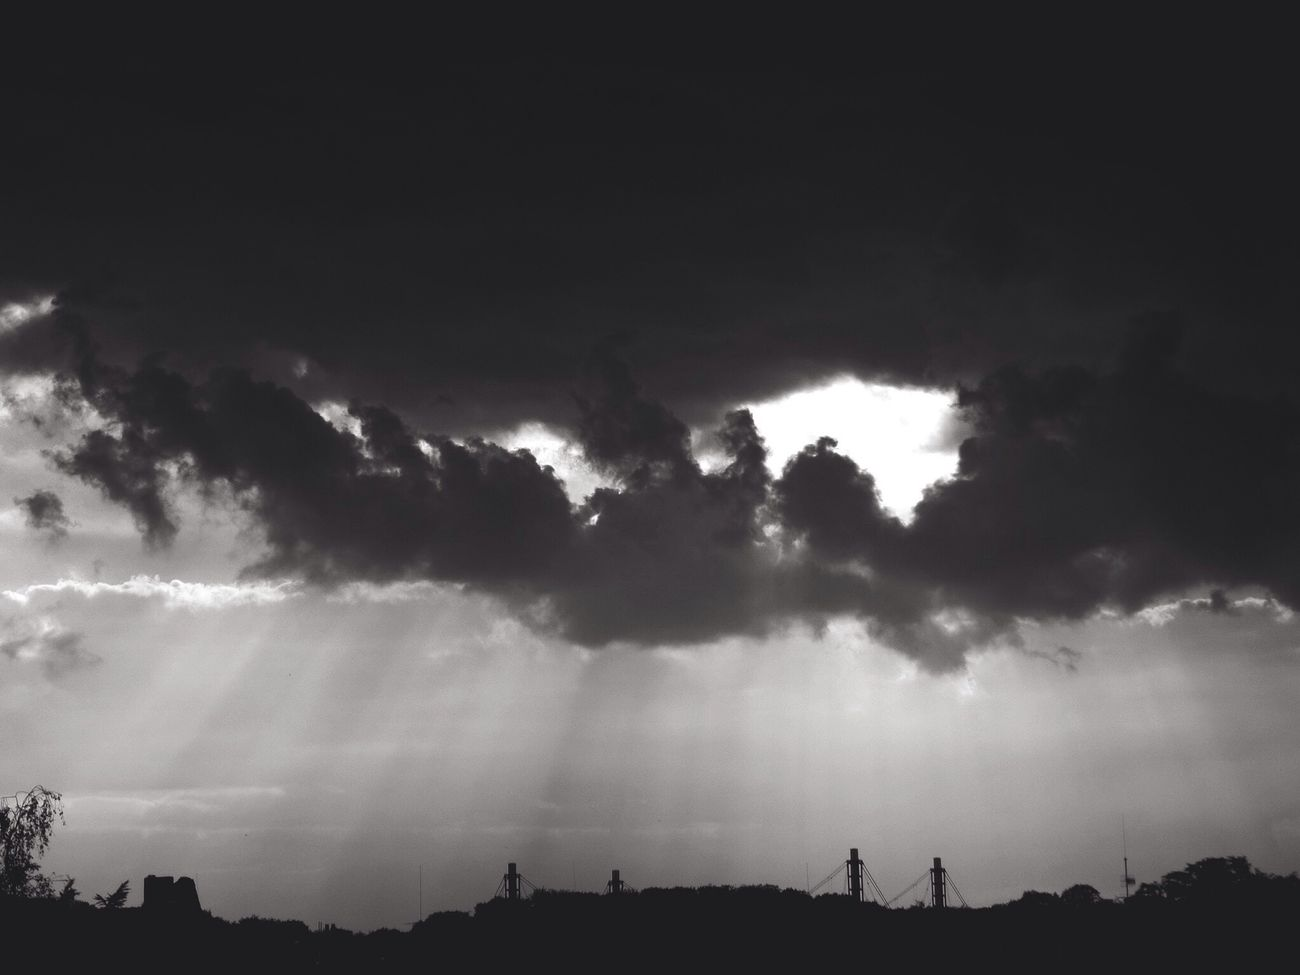 Clouds And Sky Black And White First Eyeem Photo Sky Clouds Cloudy Horizon Cloudscape Cloud Moody Sky Storm Cloud Atmosphere Atmospheric Mood Atmospheric Sky Atmospheric Monochrome Gloomy Gloomy Day Gloomy Weather Gray Gray Sky